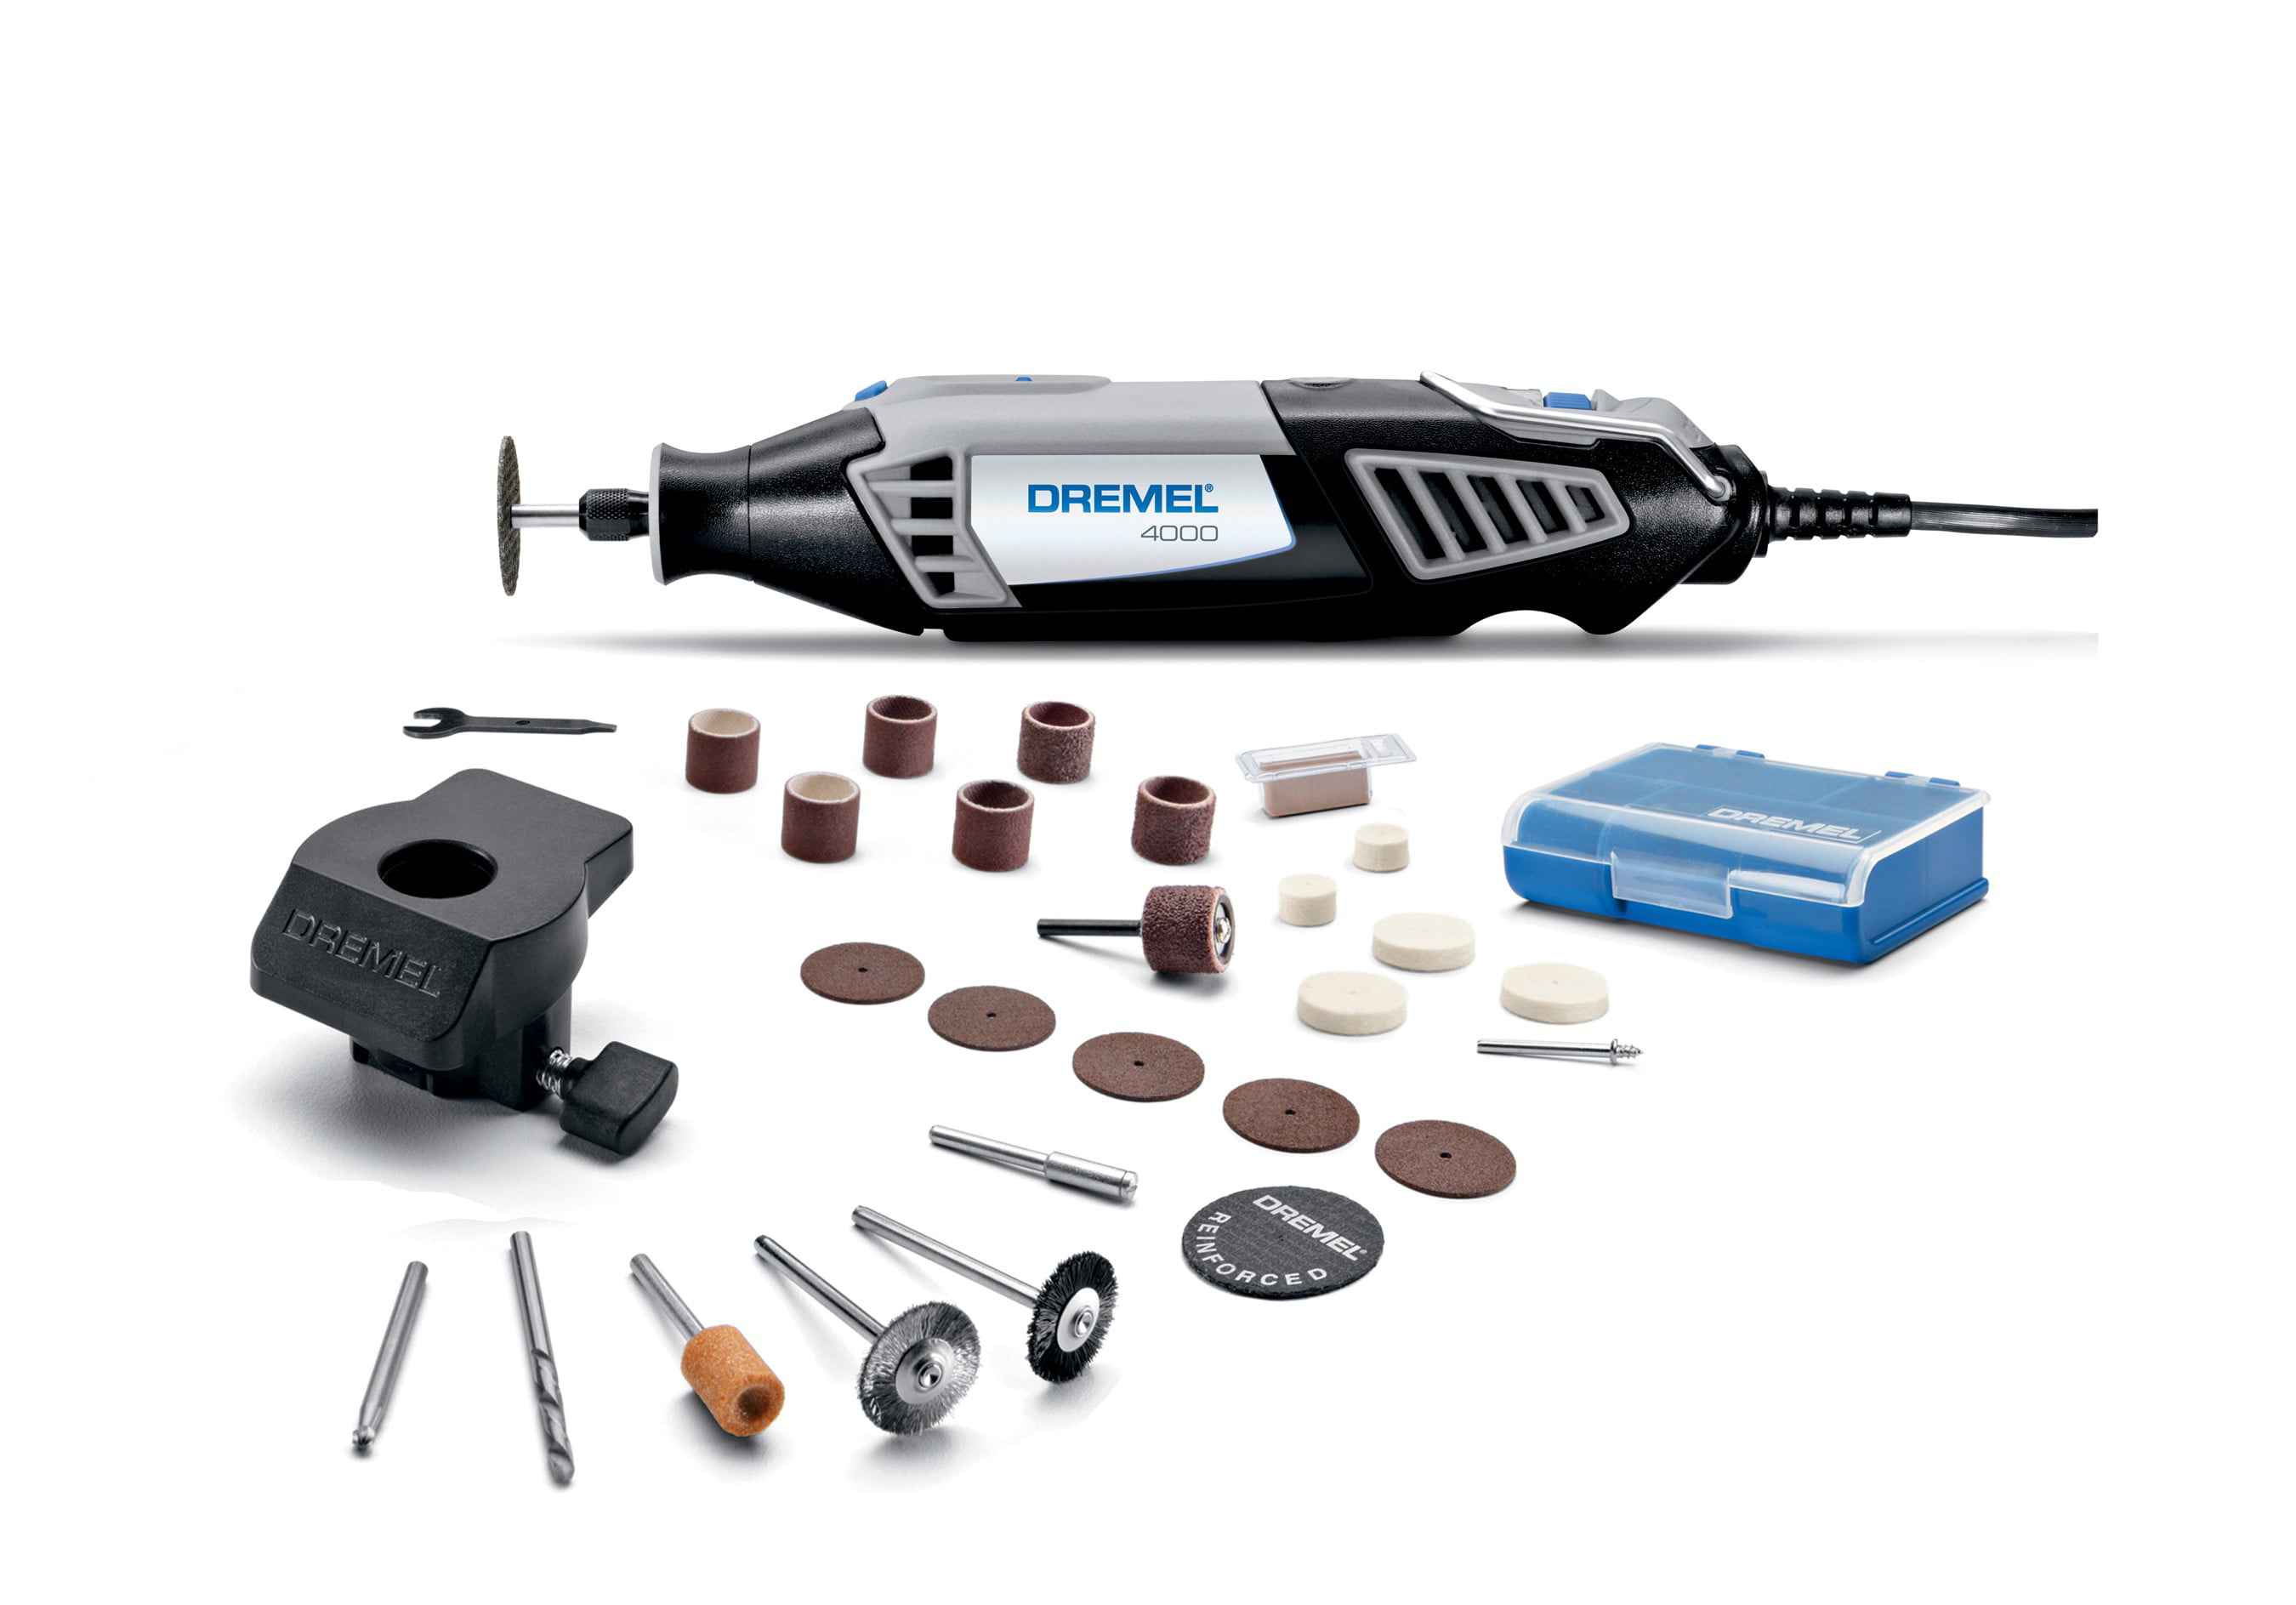 Dremel 4000 1 26 16 Amp Corded Variable Speed Rotary Tool Attachment And Accessories